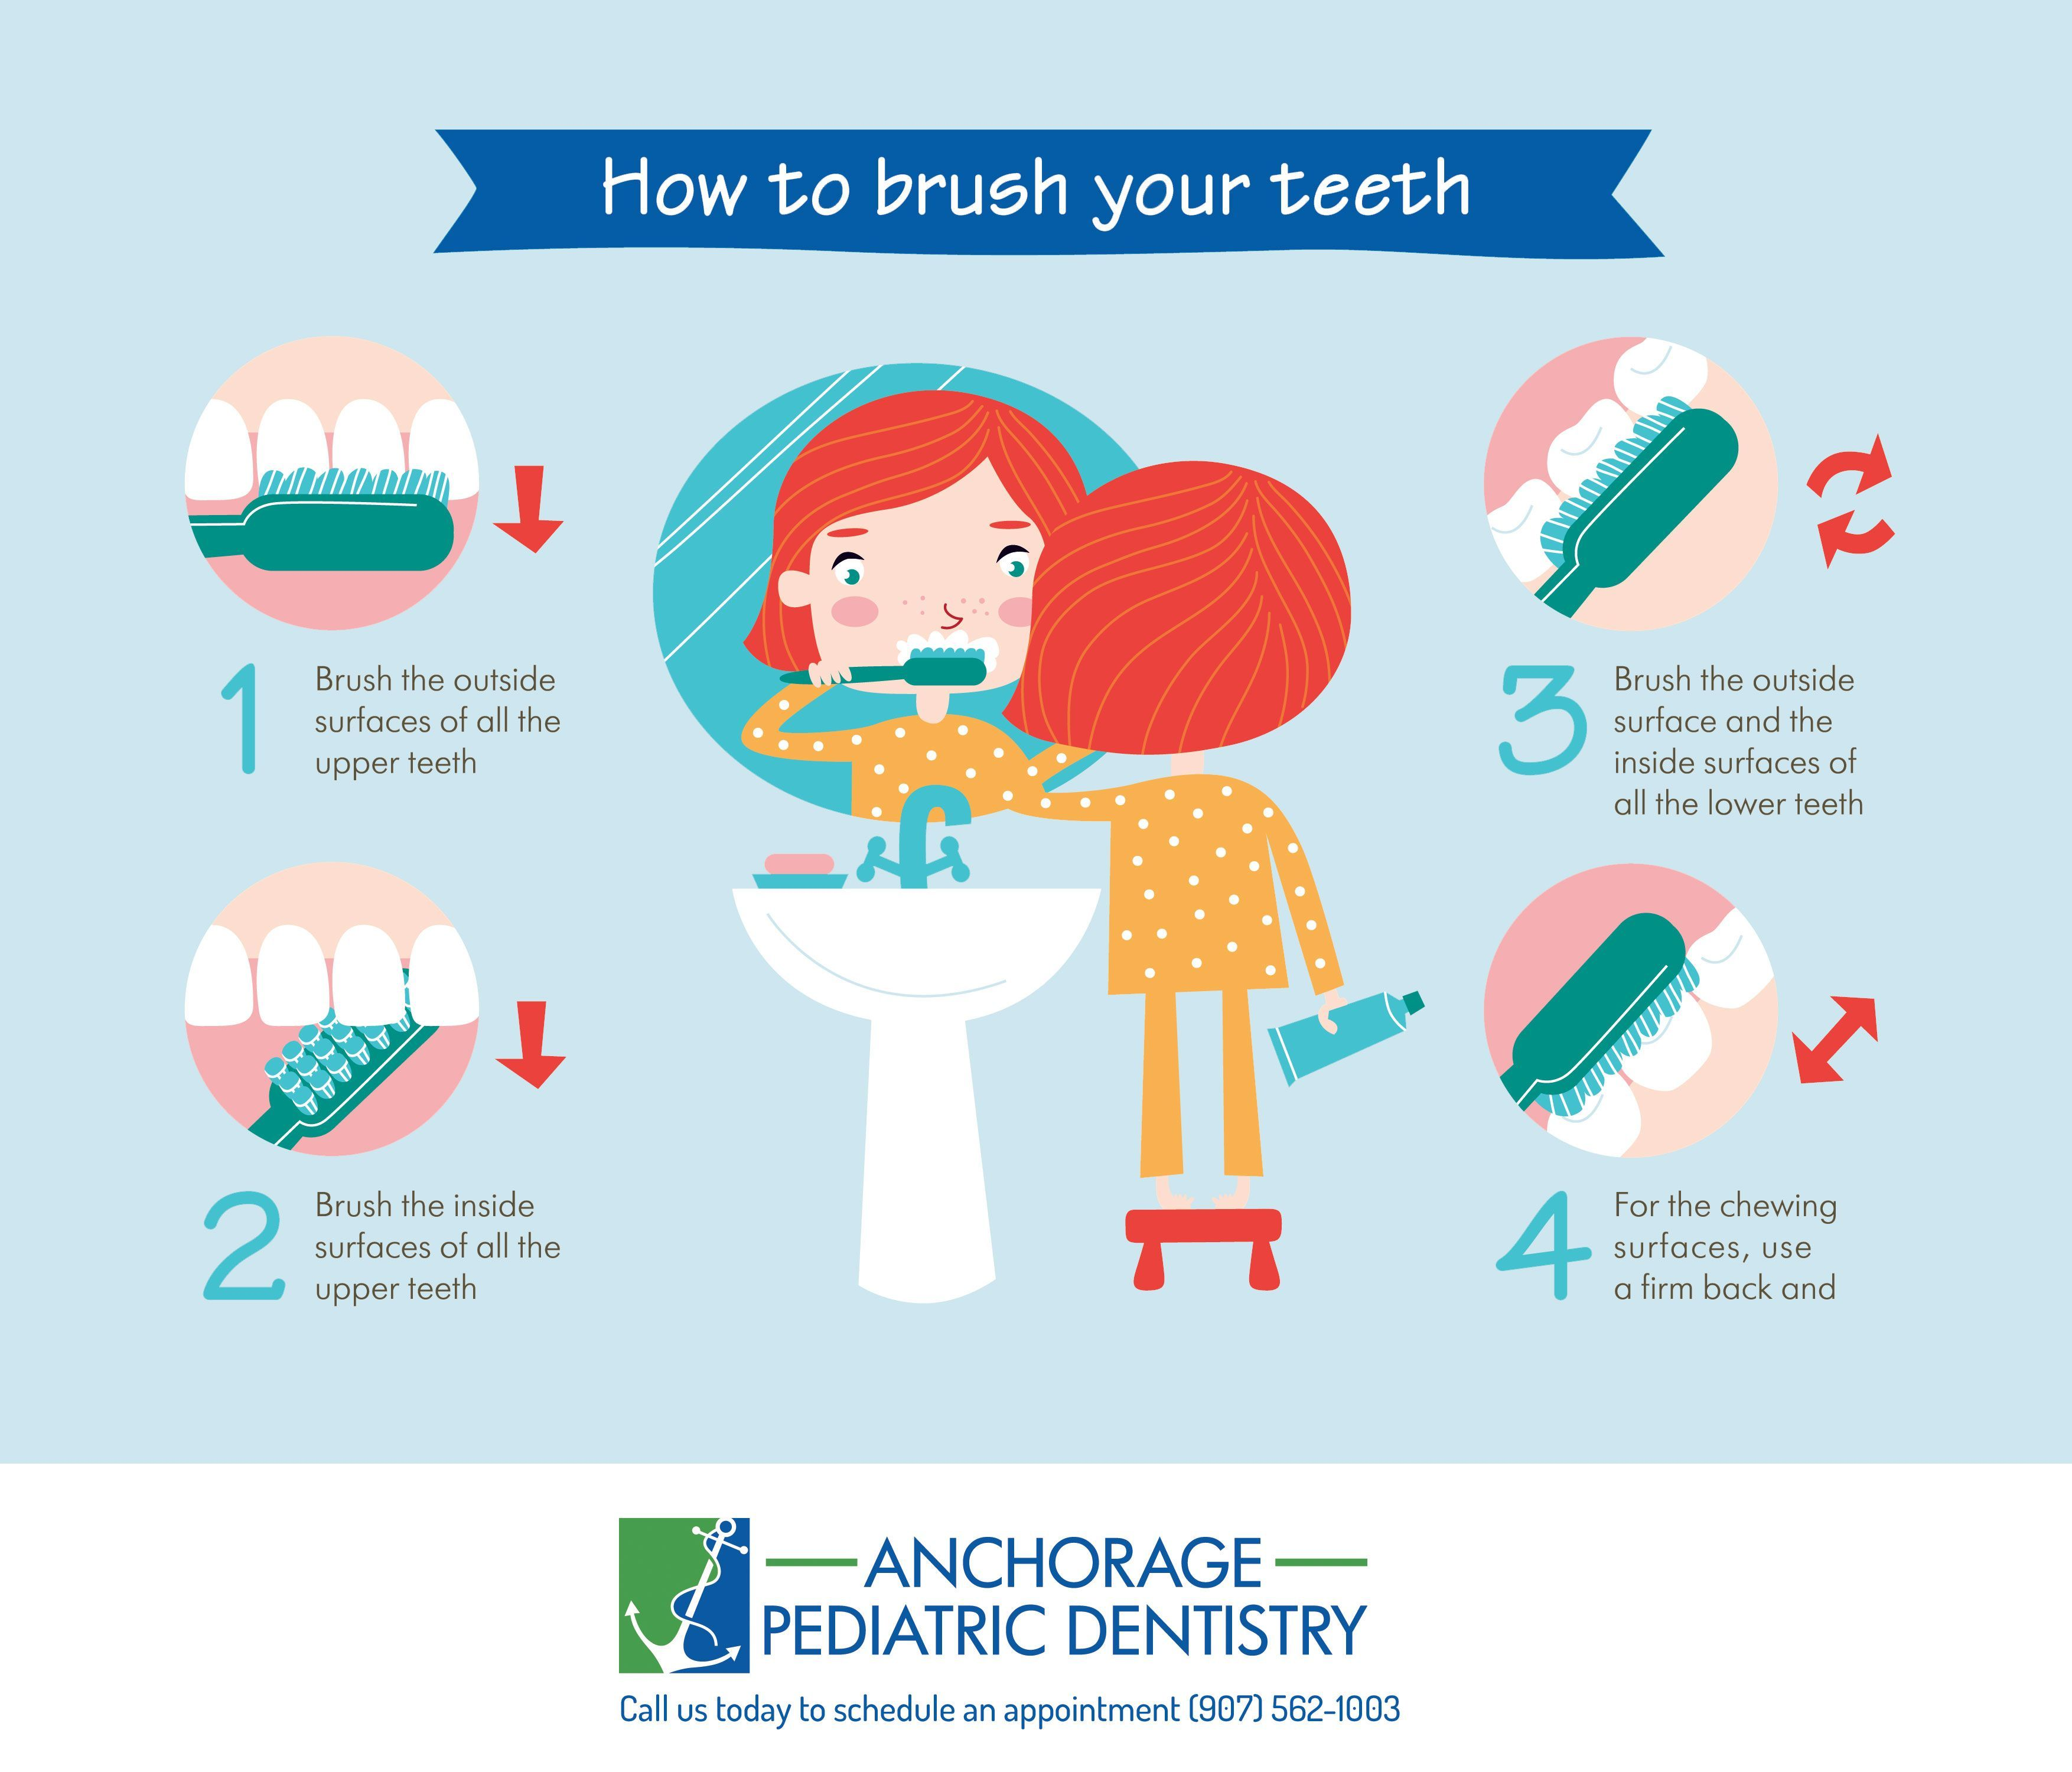 1.Do not use an old toothbrush 2.Use the correct